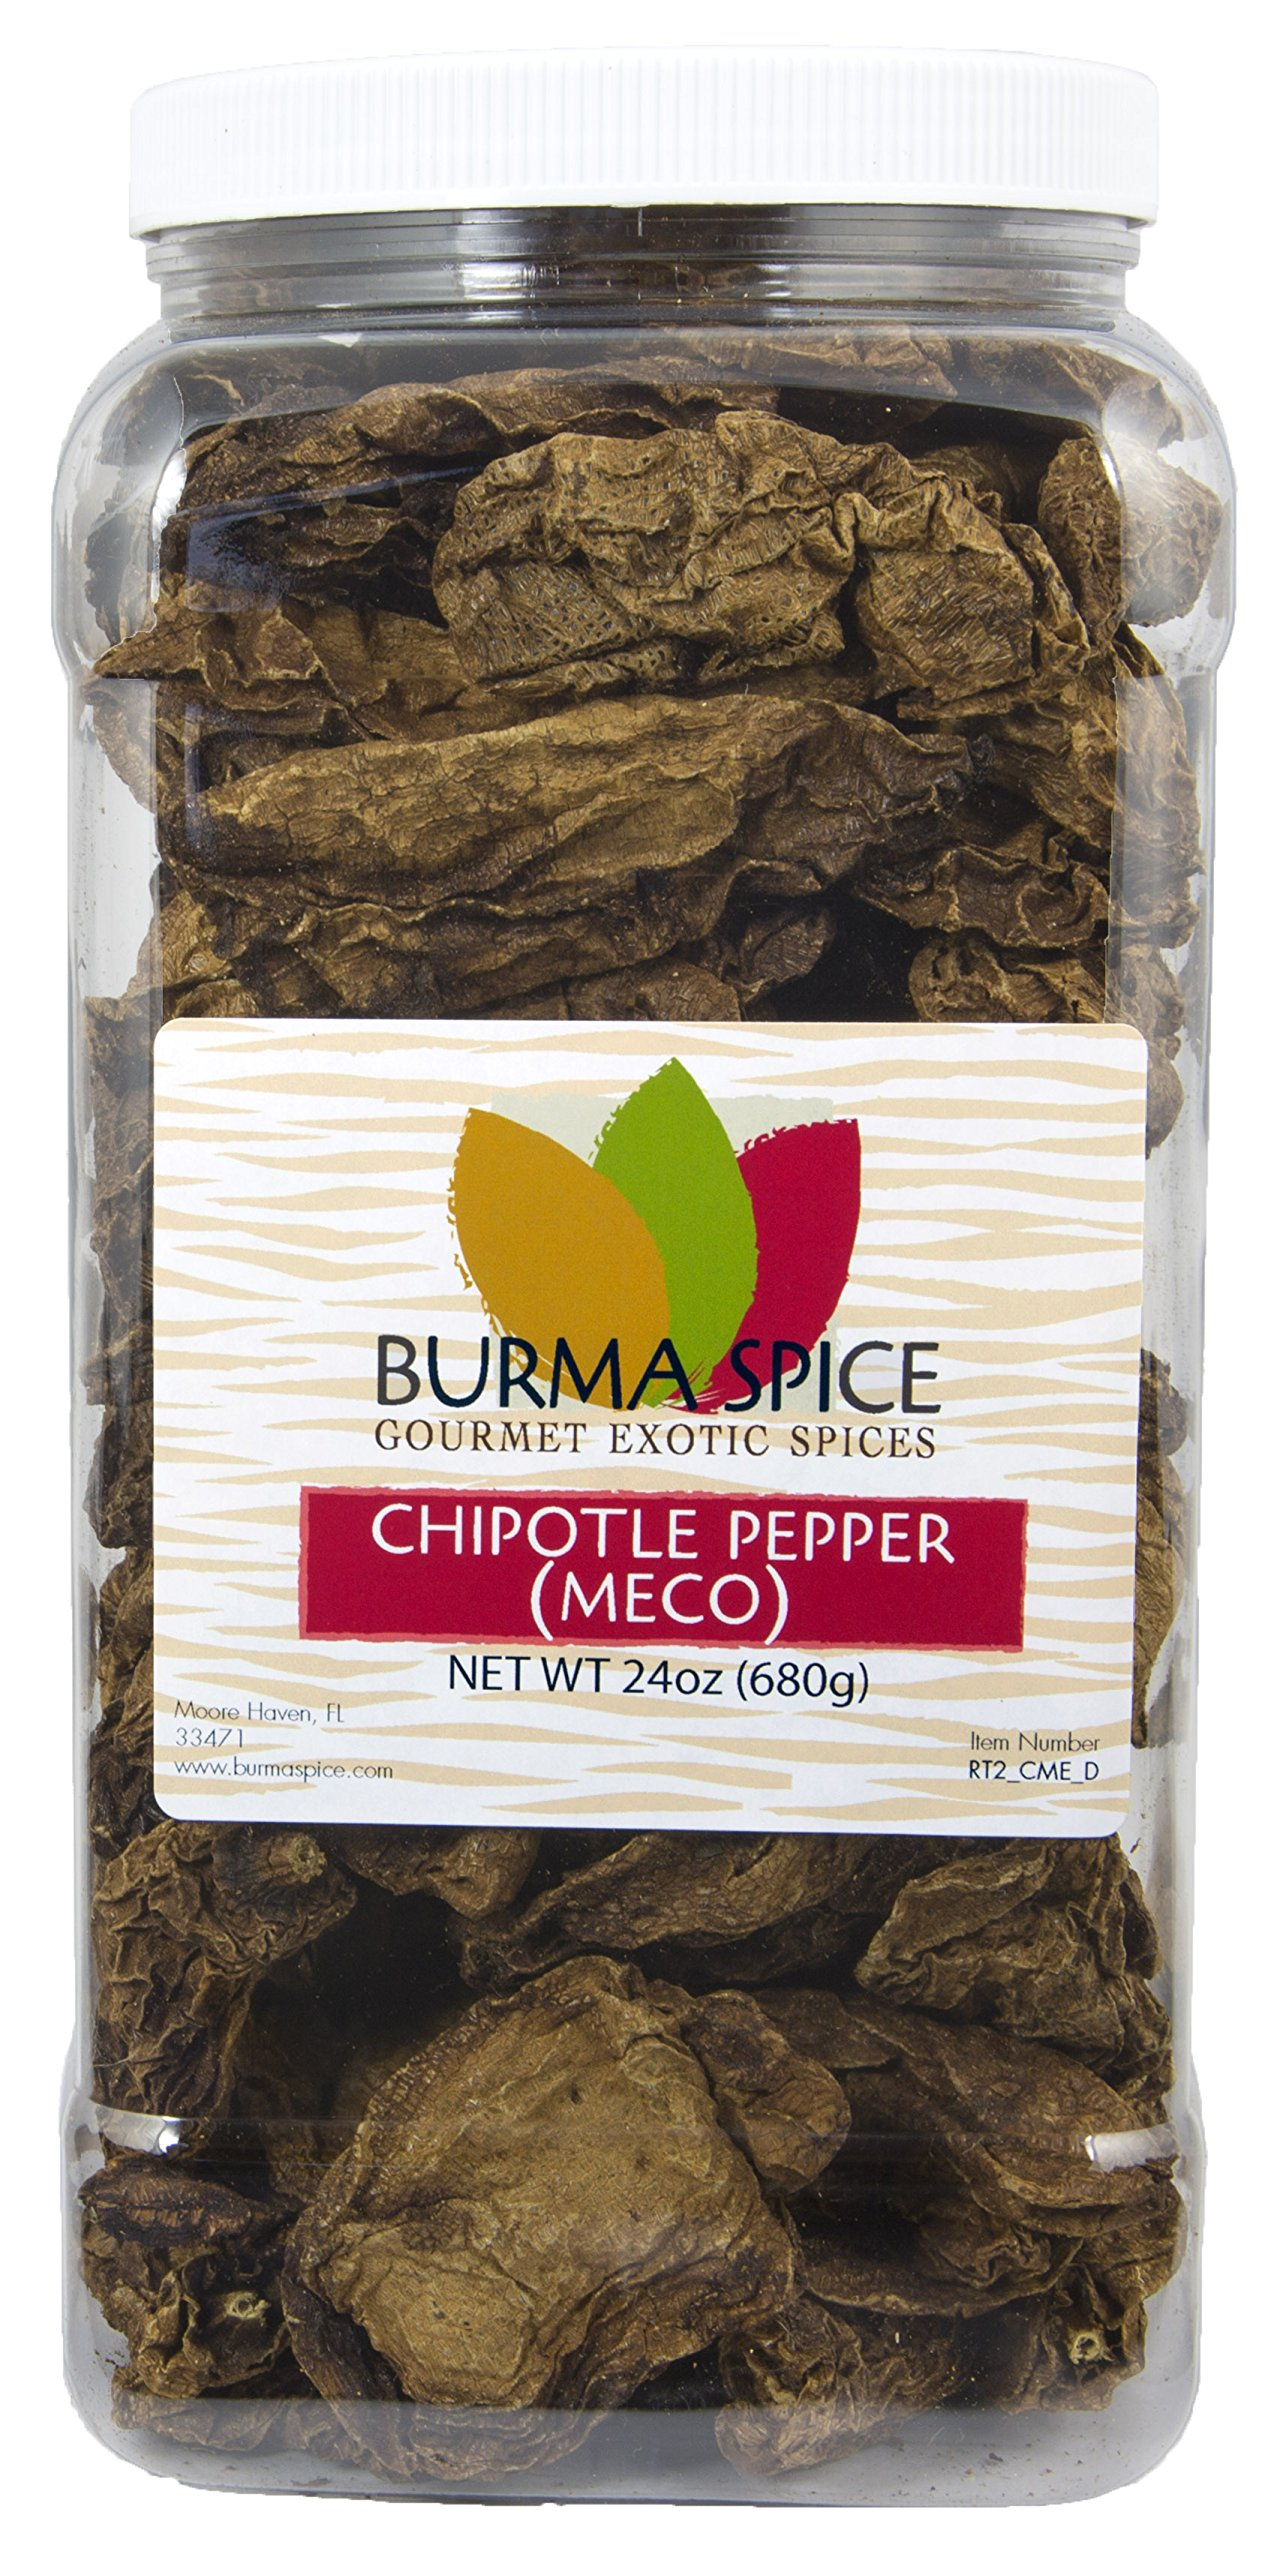 Dried Meco Chipotle Pepper : Whole Seasoning Spice Kosher Certified (24oz.)